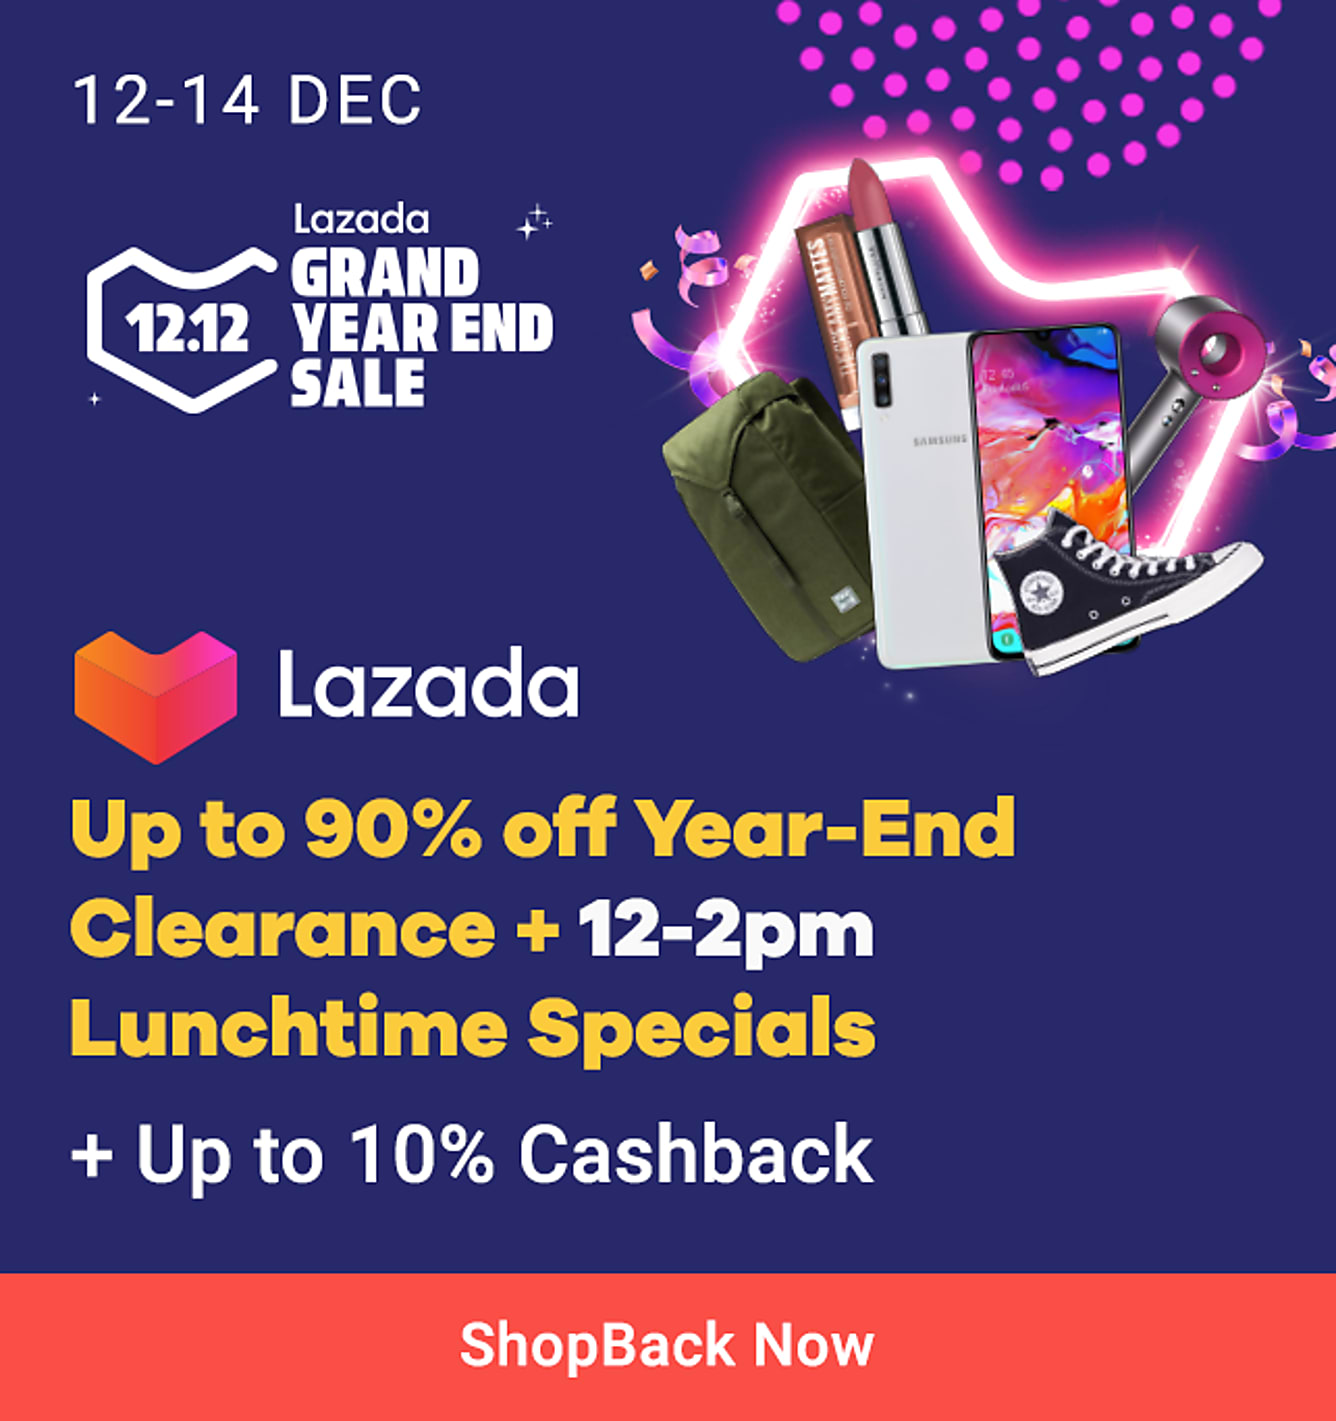 Lazada year-end clearance